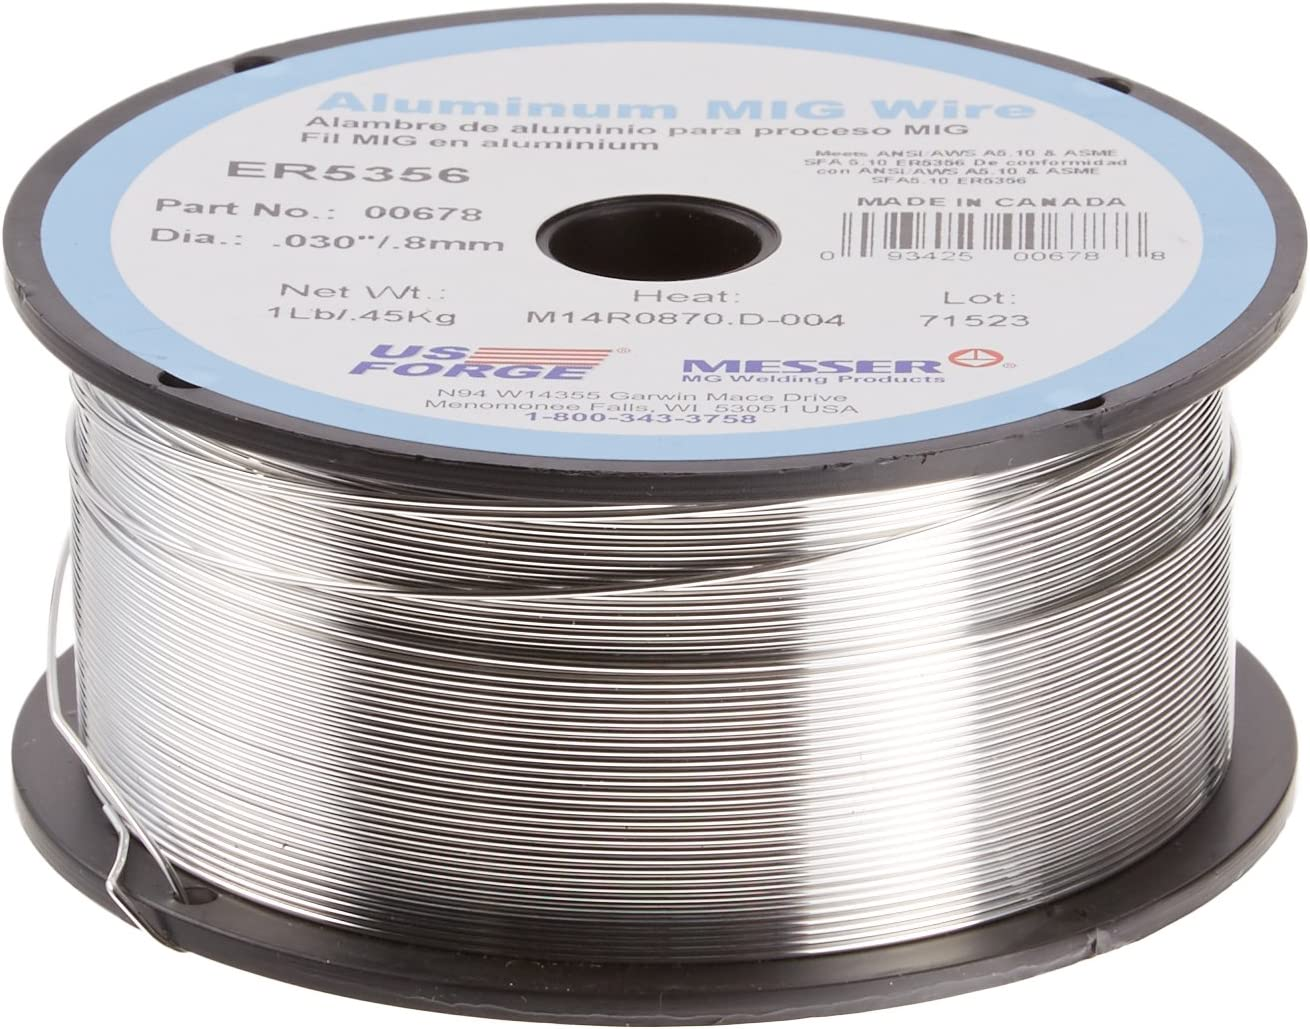 Eastwood Solid Mig Wire 0.023 in Pound Spool Carbon Steel Mig Copper Coated Solid Welding Wire